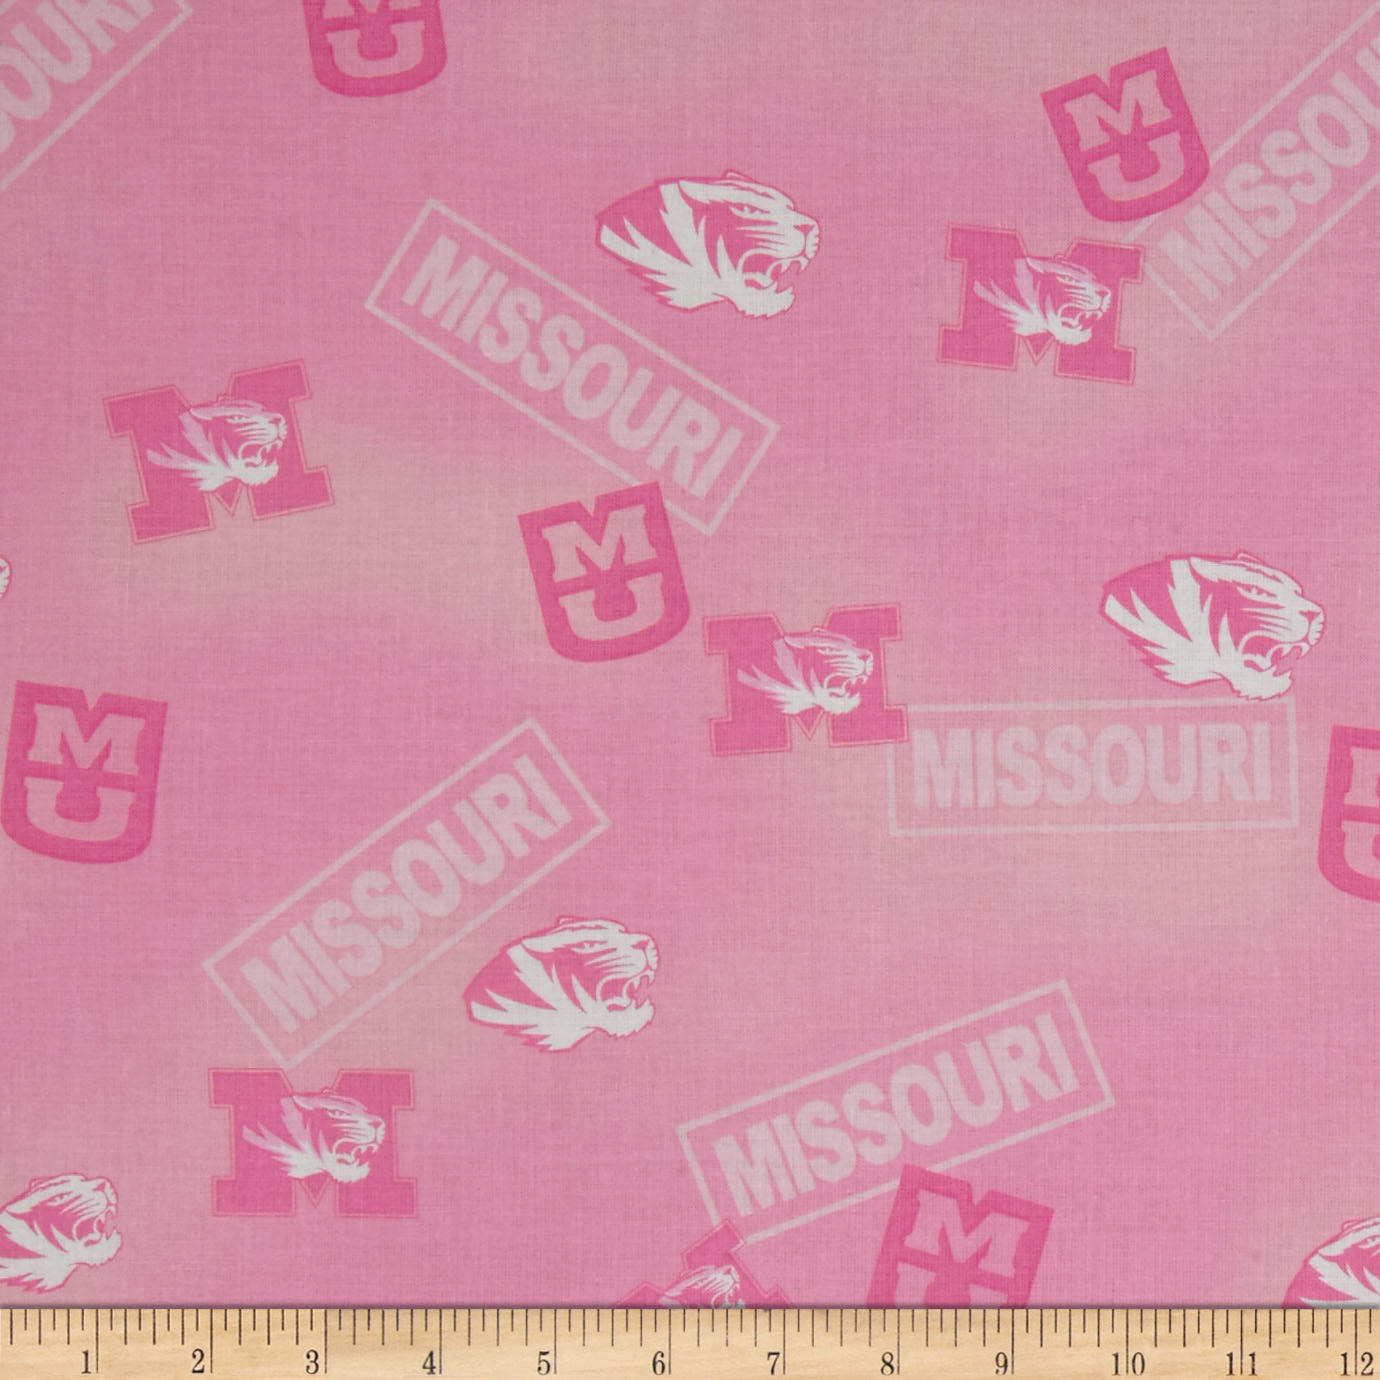 Collegiate Cotton Broadcloth Missouri Pink Fabric